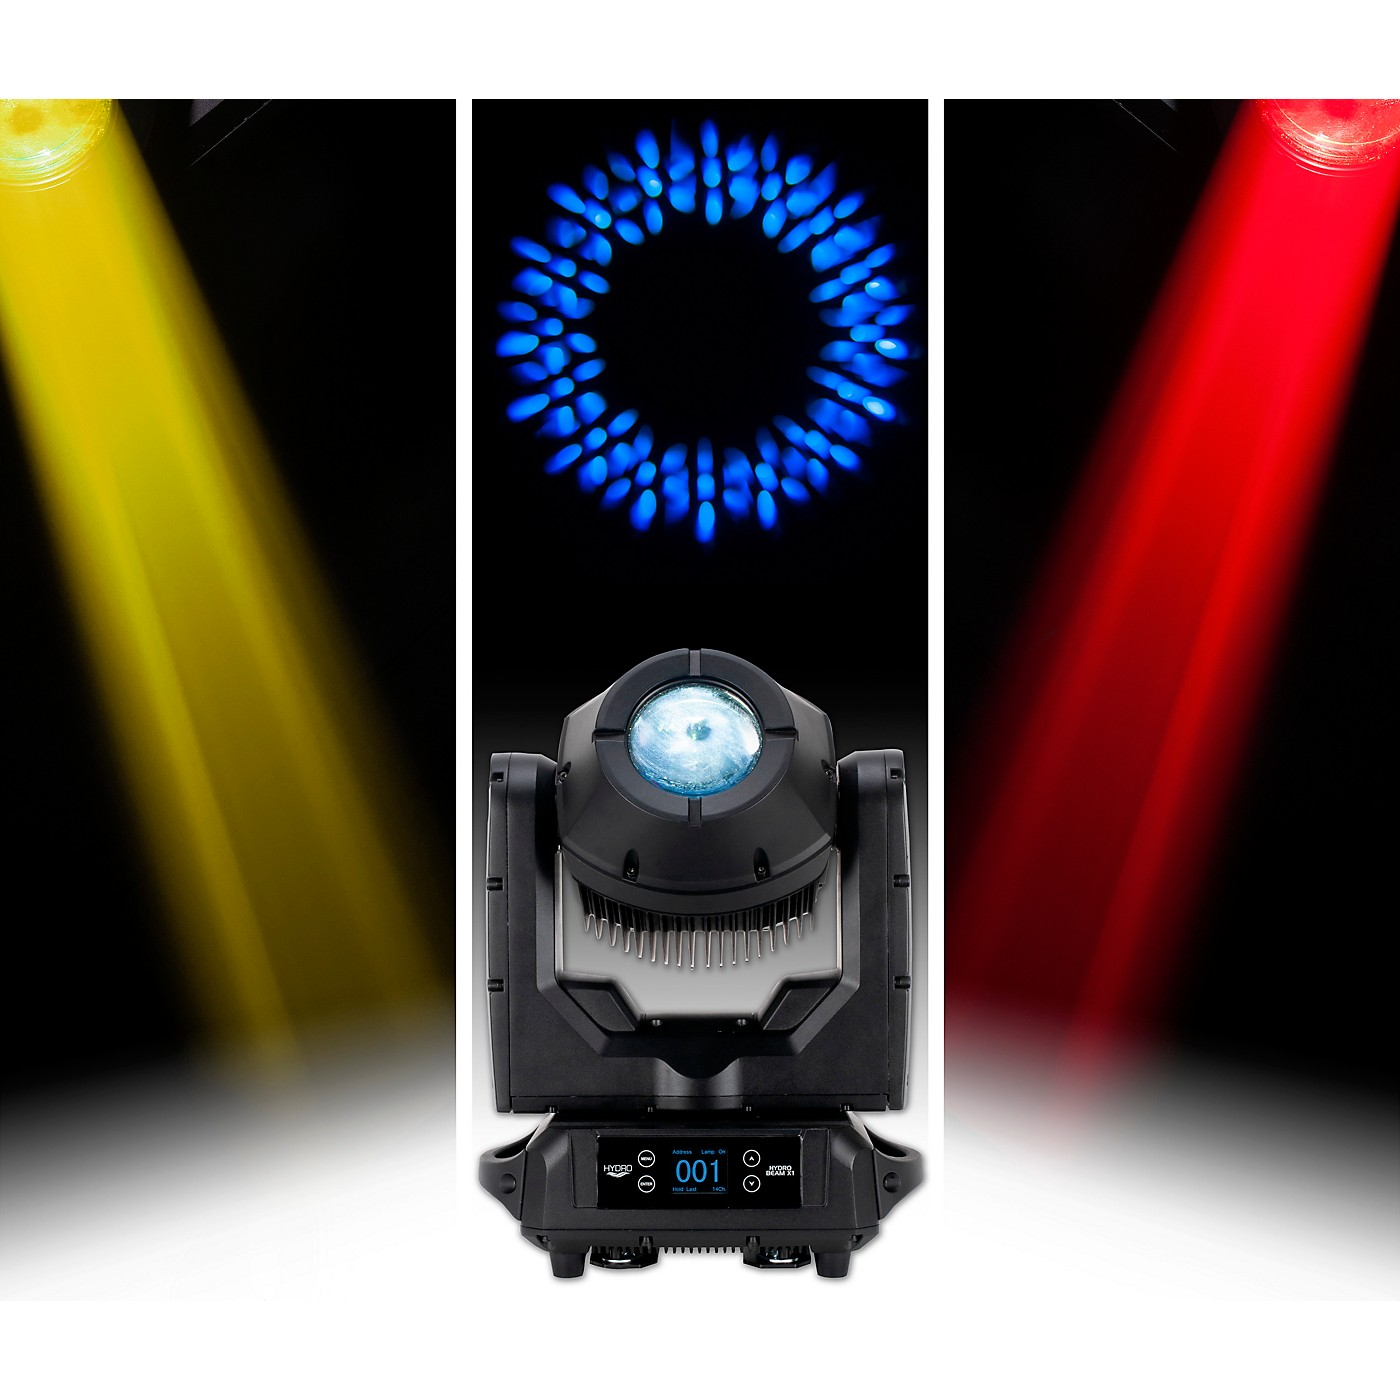 American DJ HYDRO BEAM X1 IP 65 Rated 100 Watt Discharge Moving Head With a 3 Degree Beam and 16 facet prism Wireless DMX Built In thumbnail